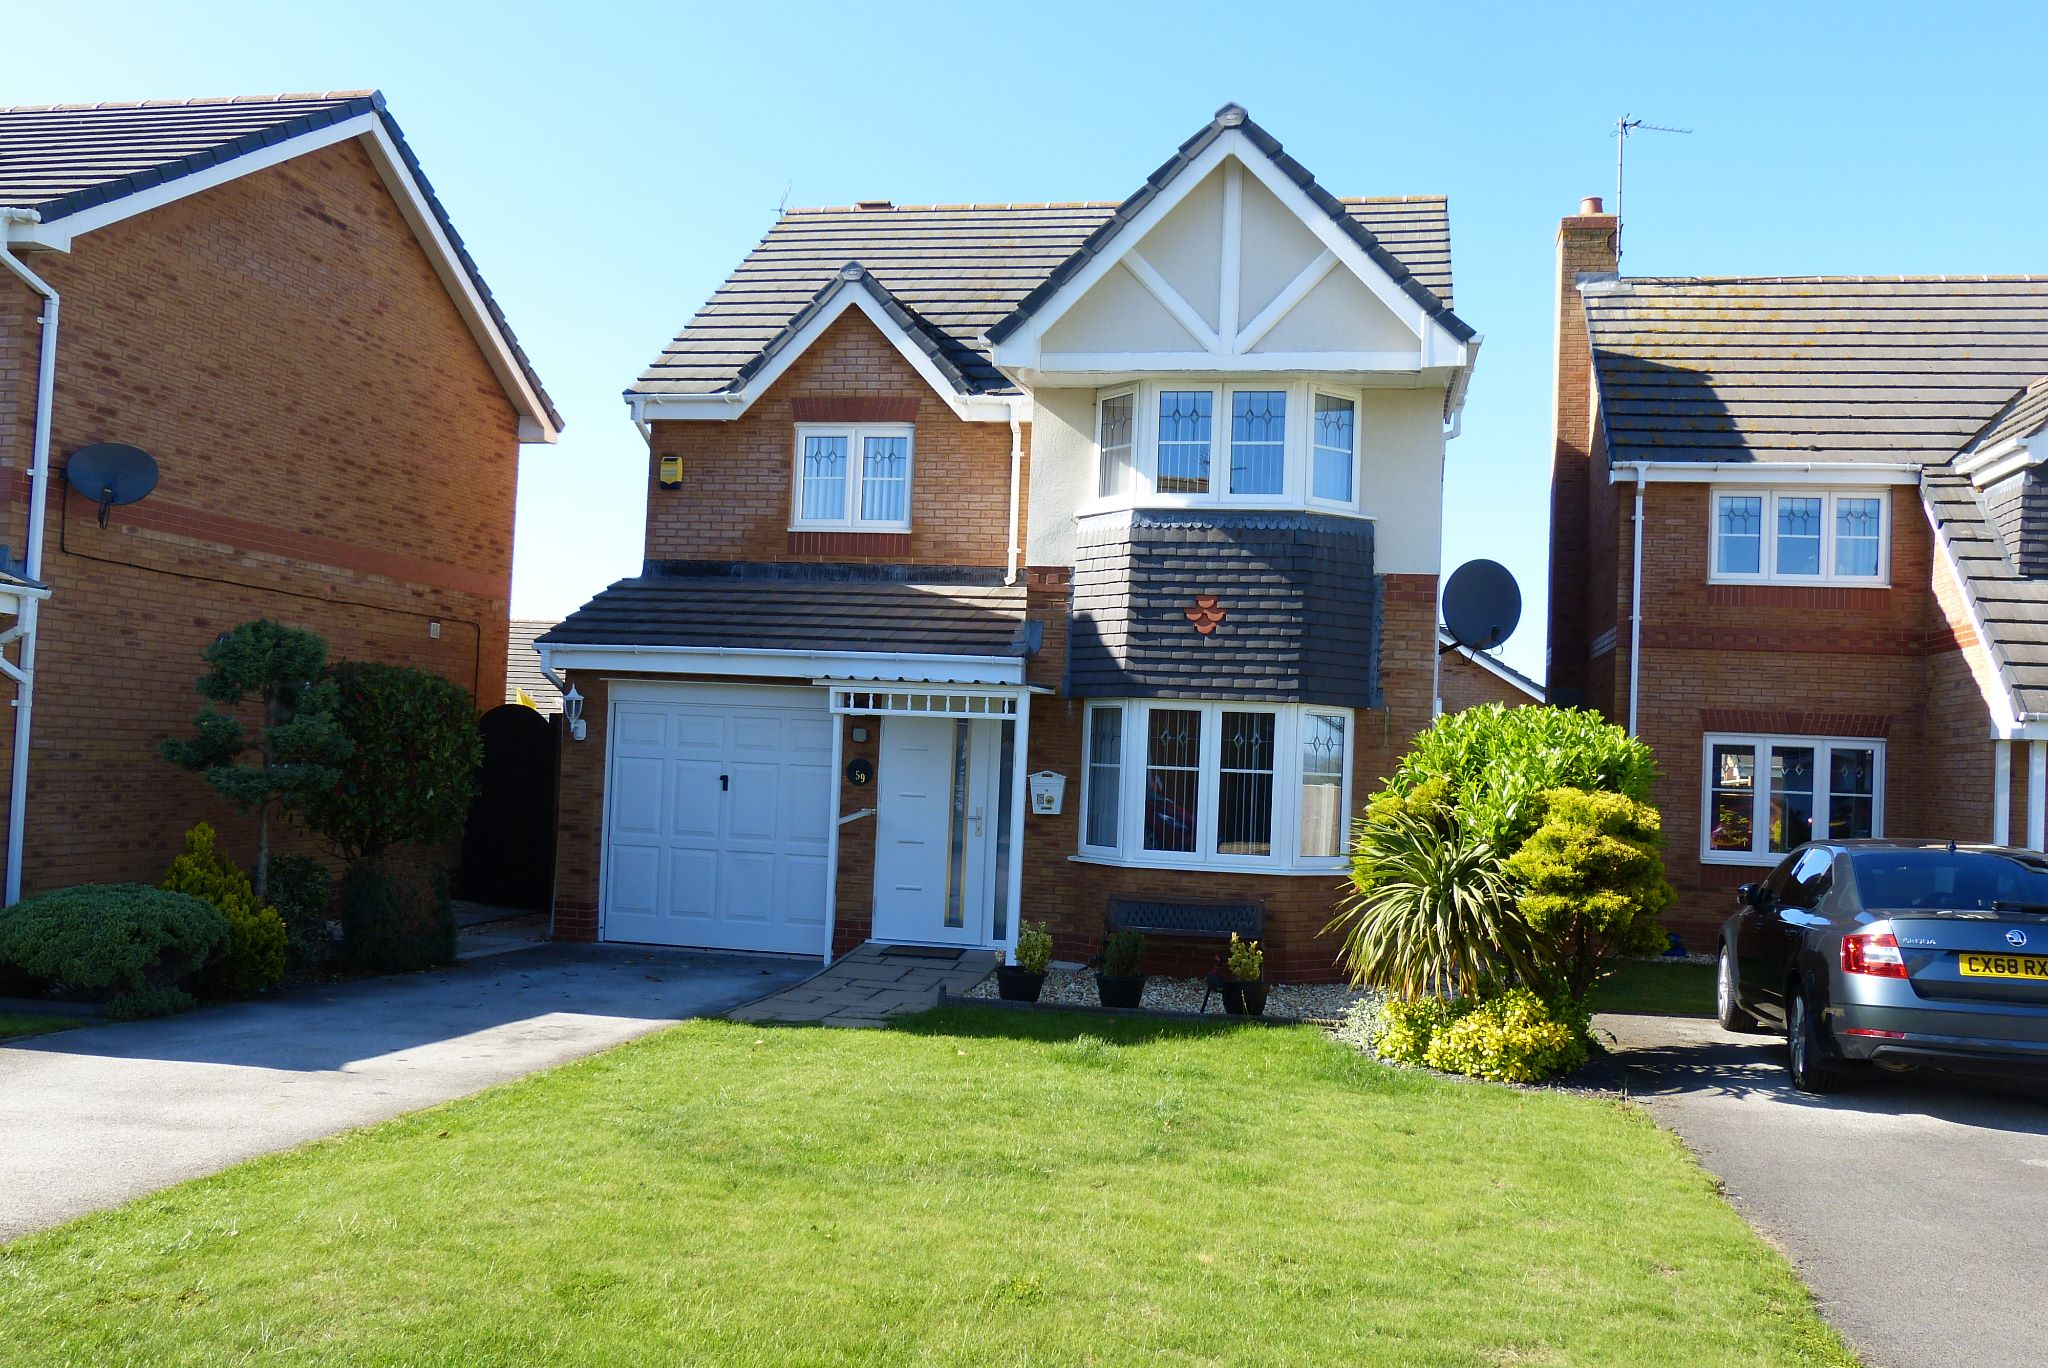 4 bedroom detached house SSTC in Abergele - Photograph 1